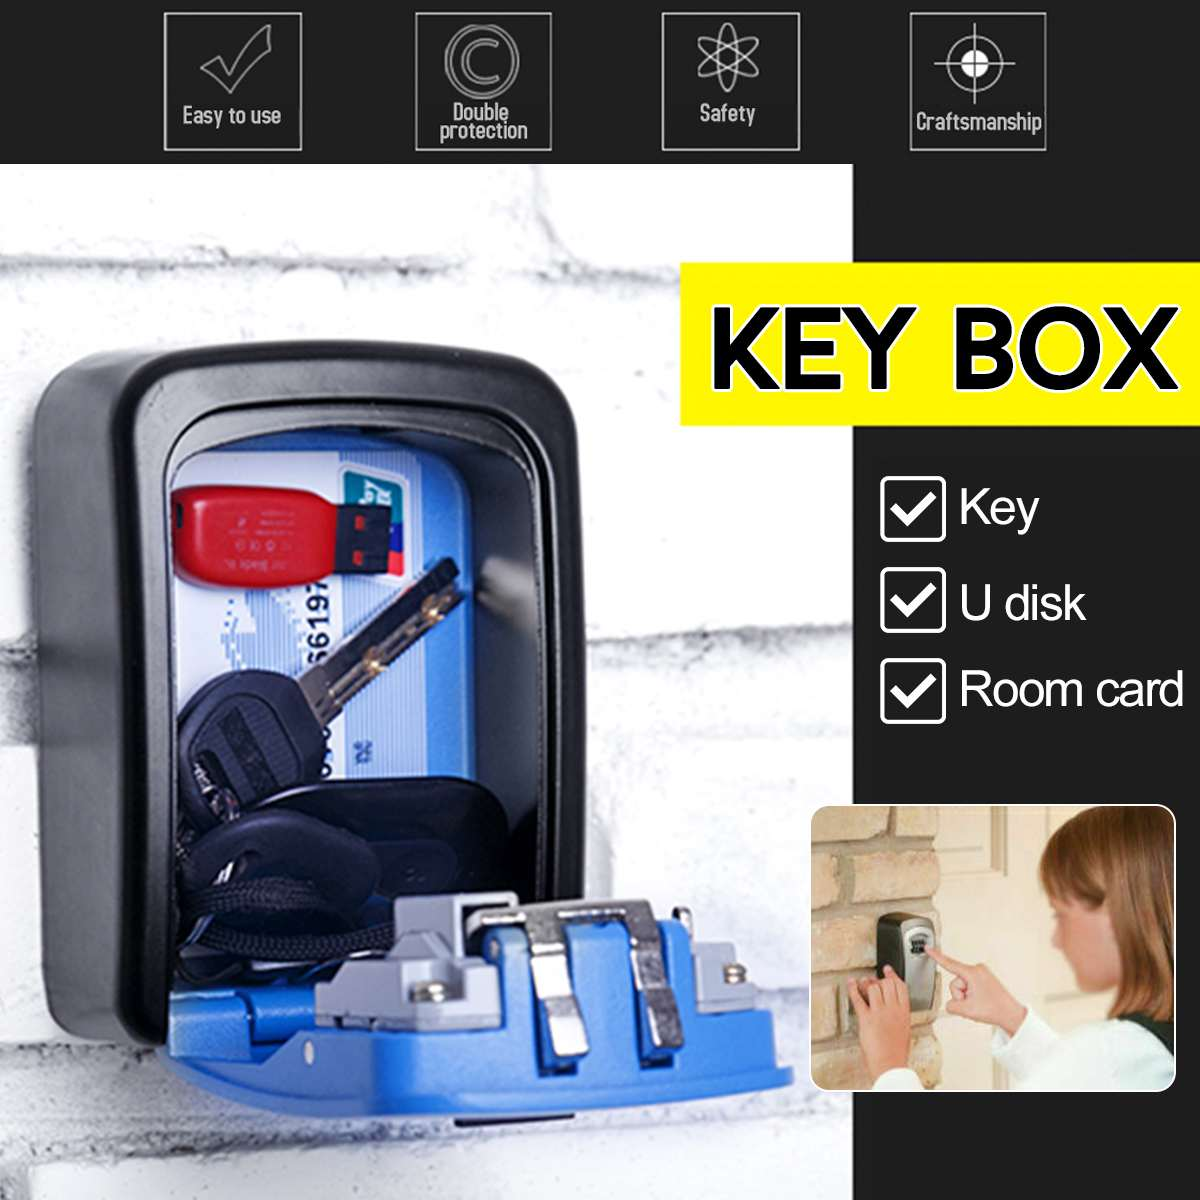 4 Digit Key Safe Box Outdoor Code Lock Storage Case Wall Mounted Larger Capacity Security Key Holder Rust Free Alumium Alloy